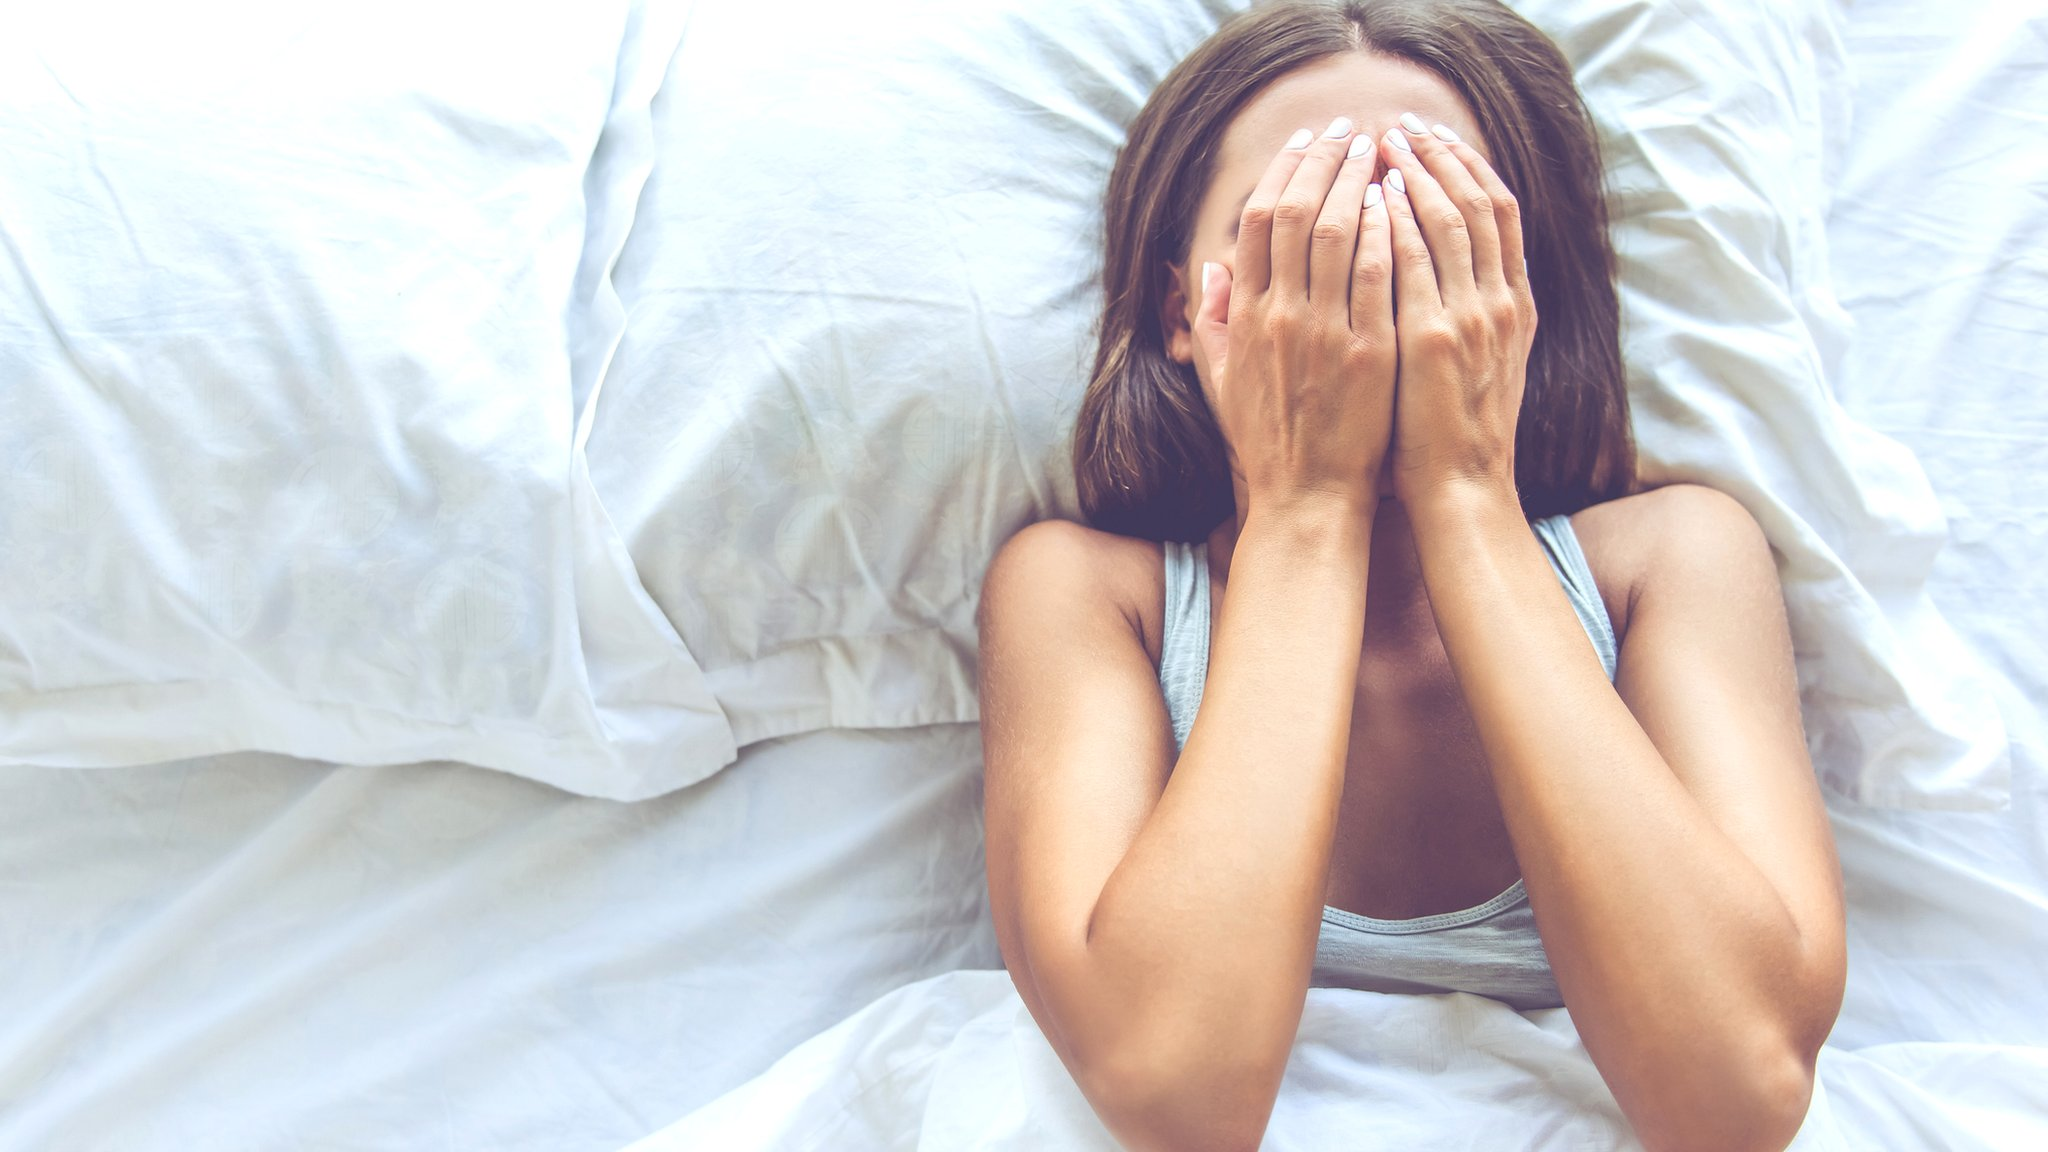 Young woman in bed trying to sleep